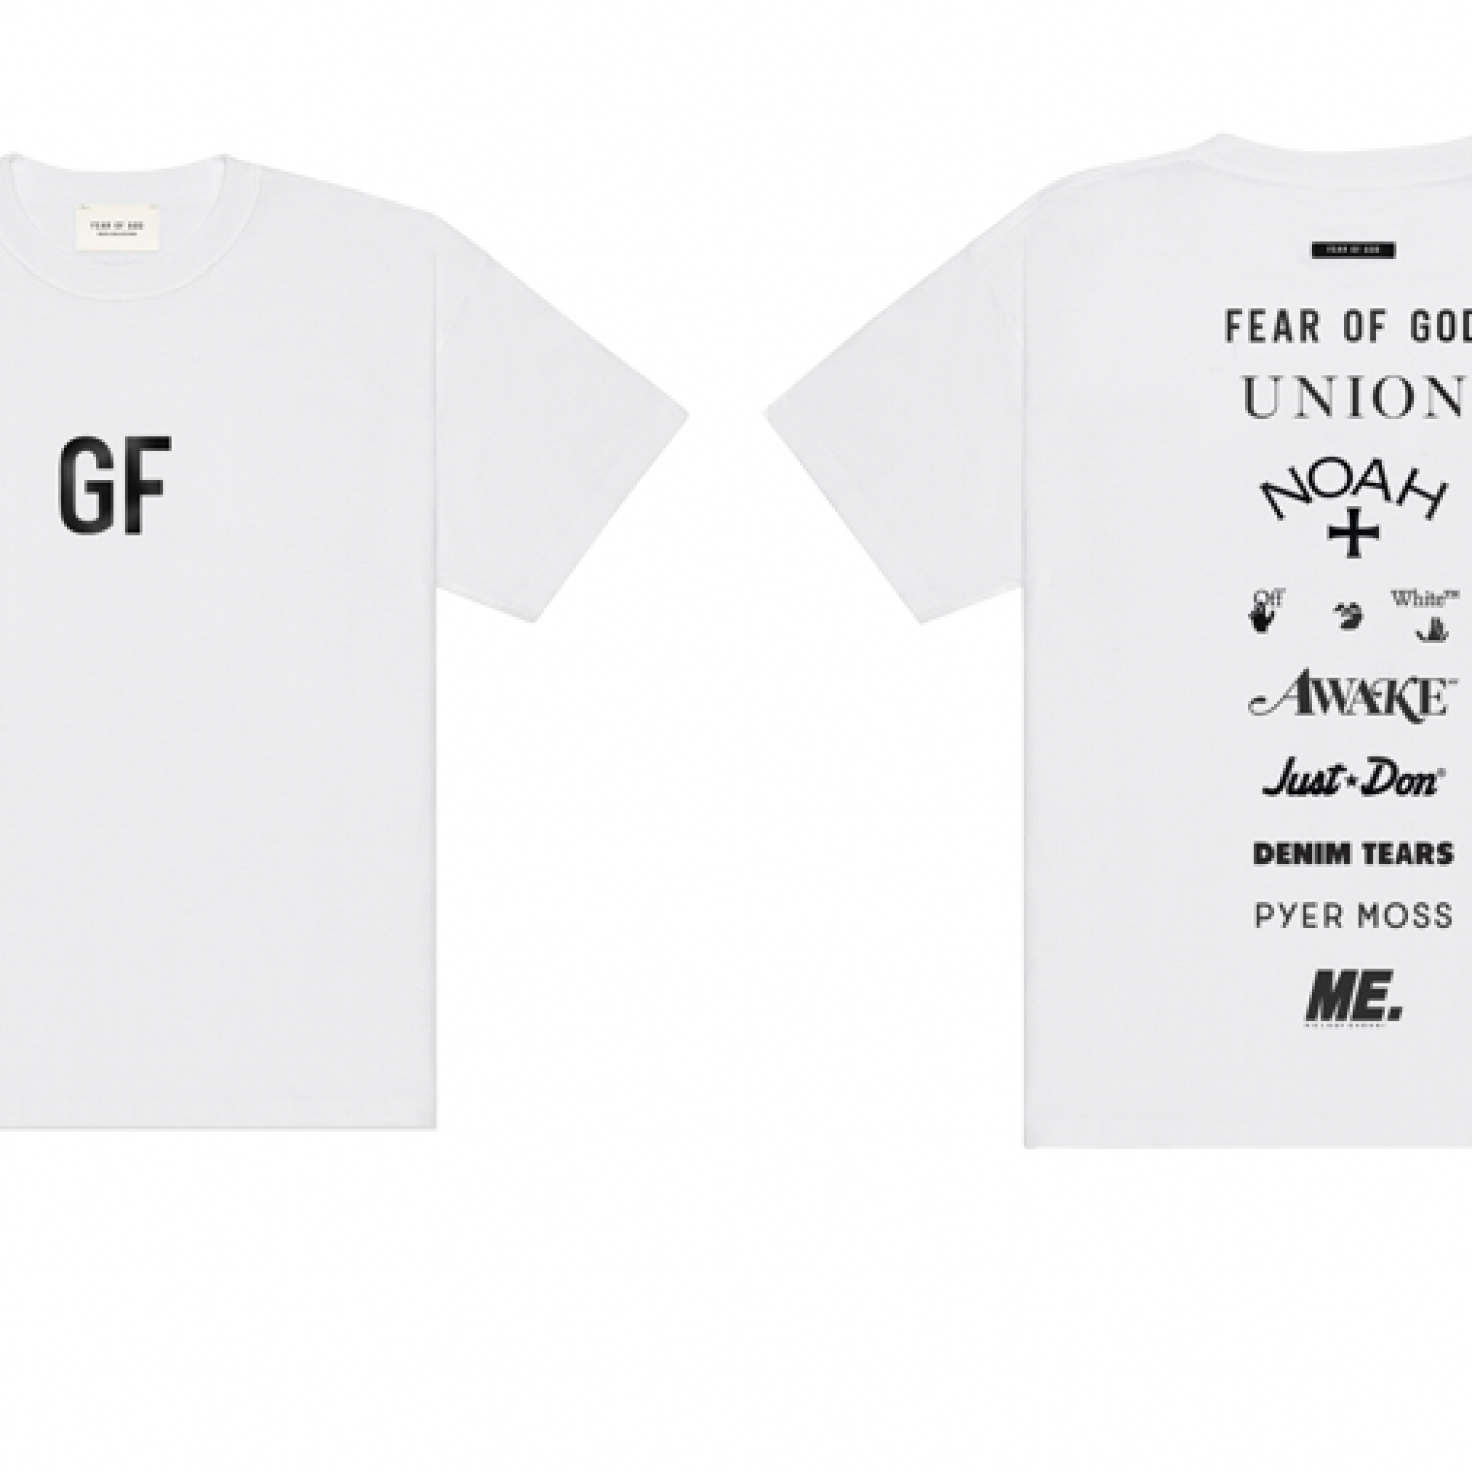 Fear Of God Launches 'GF' Tee With 100 Percent Of Proceeds Going To George Floyd's Daughter